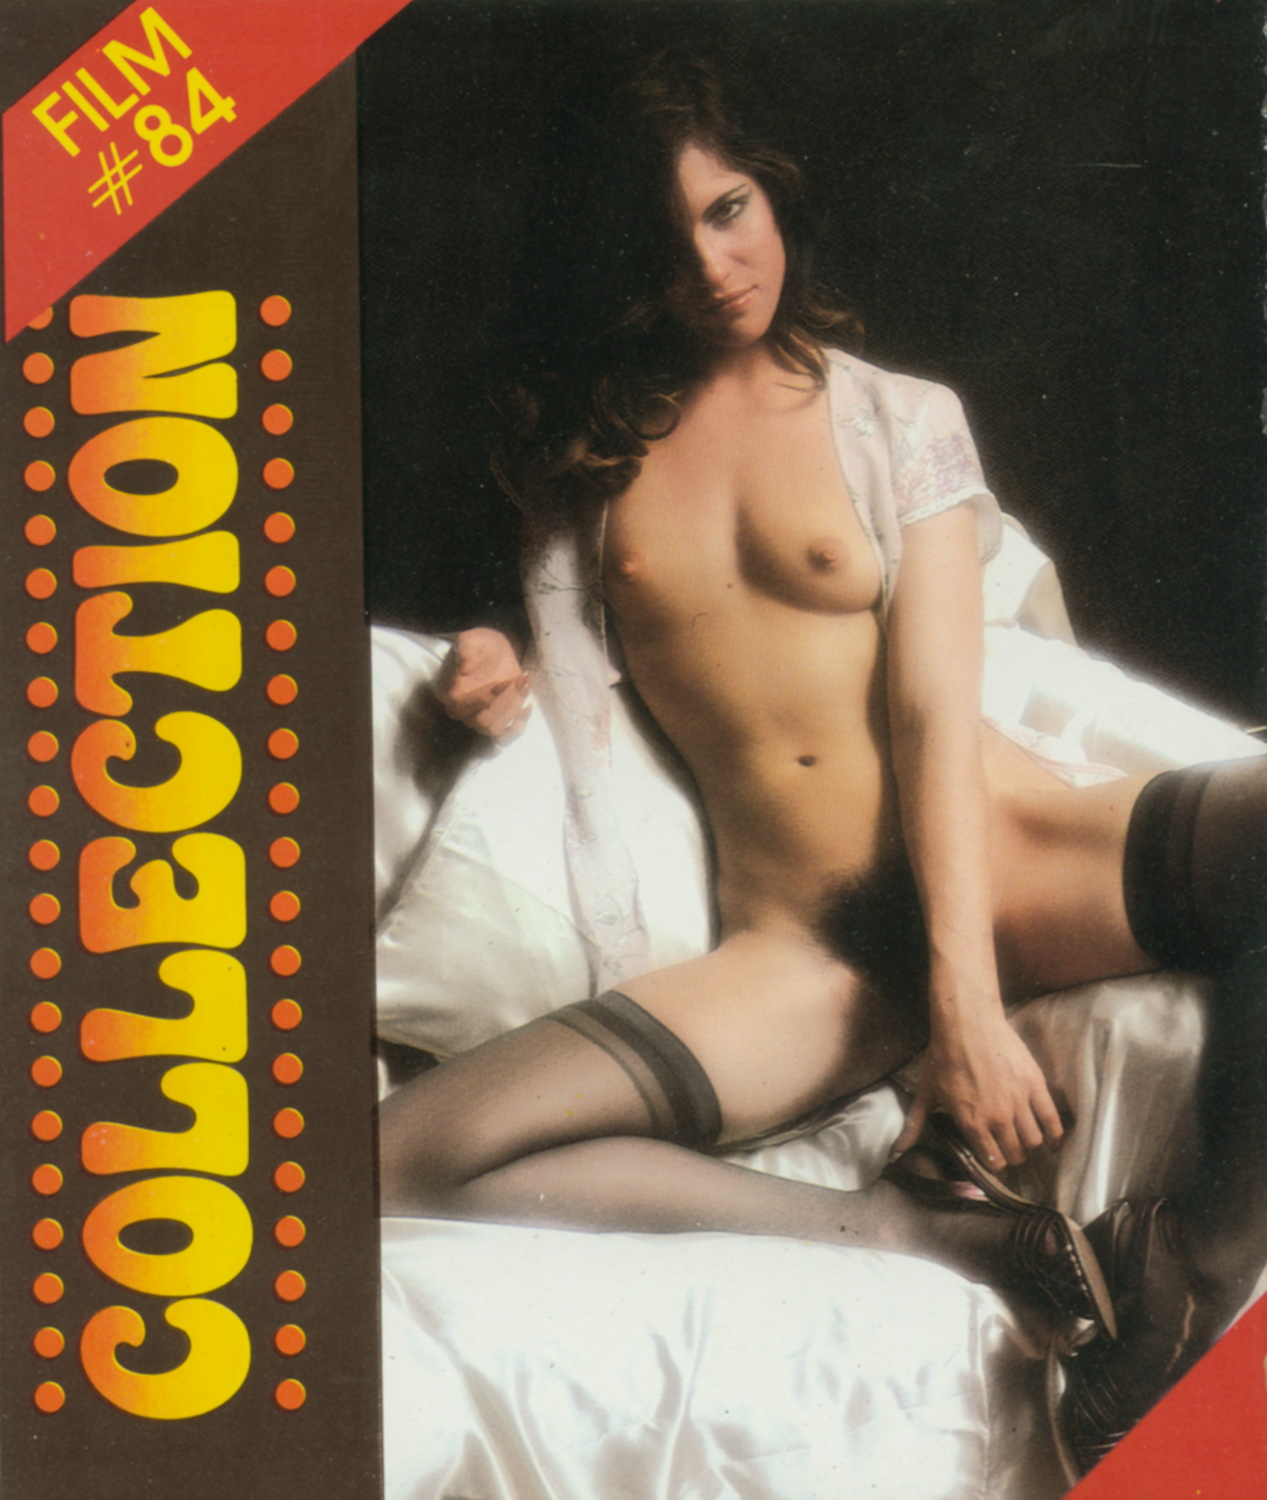 Becky Savage & Mike Ranger - Collection Film 084 - Service With A Smile cover.jpg